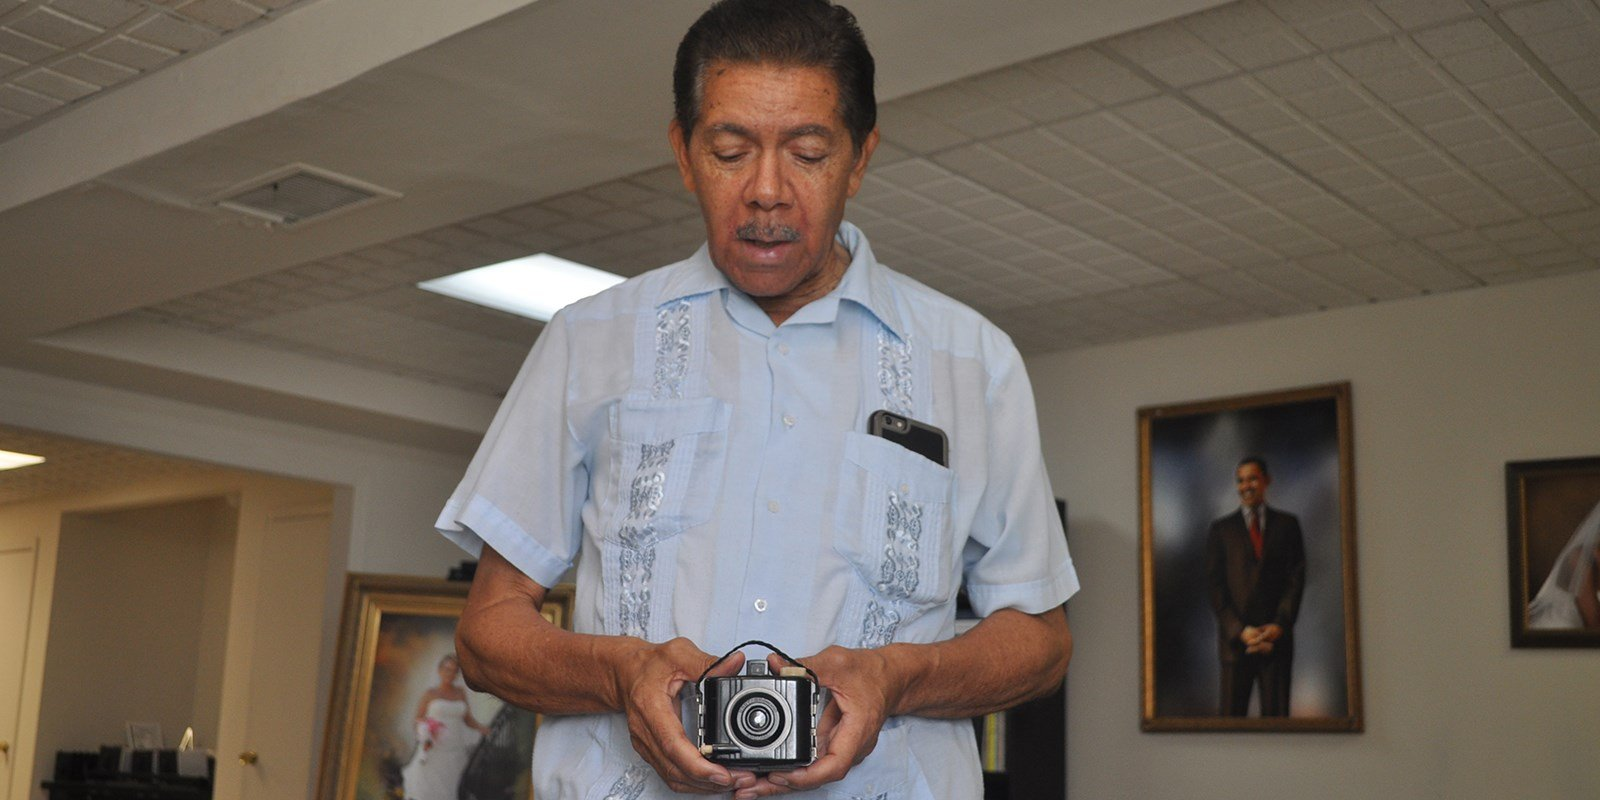 Cecil Williams in Nov. 2016 showing off his first camera - a Kodak Baby Brownie.